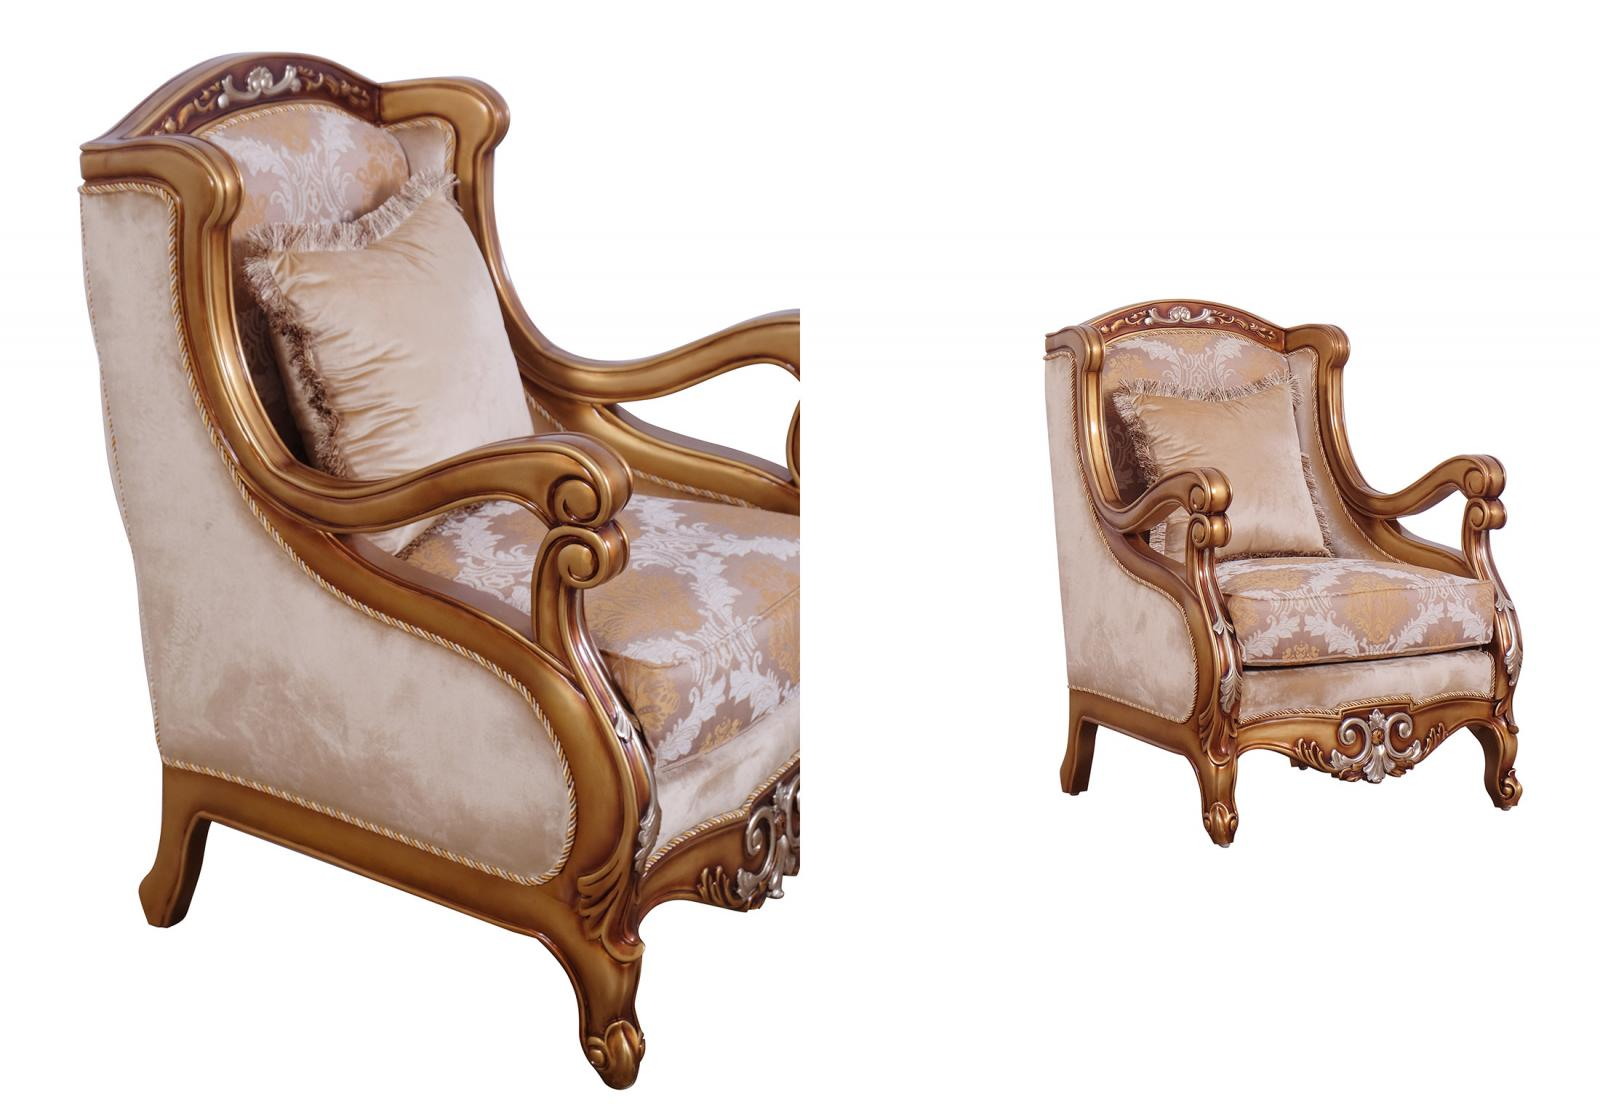 Classic  Traditional Brown  Gold  Silver Wood  Solid Hardwood and Fabric Arm Chair Set EUROPEAN FURNITURE 41026-C-Set-2